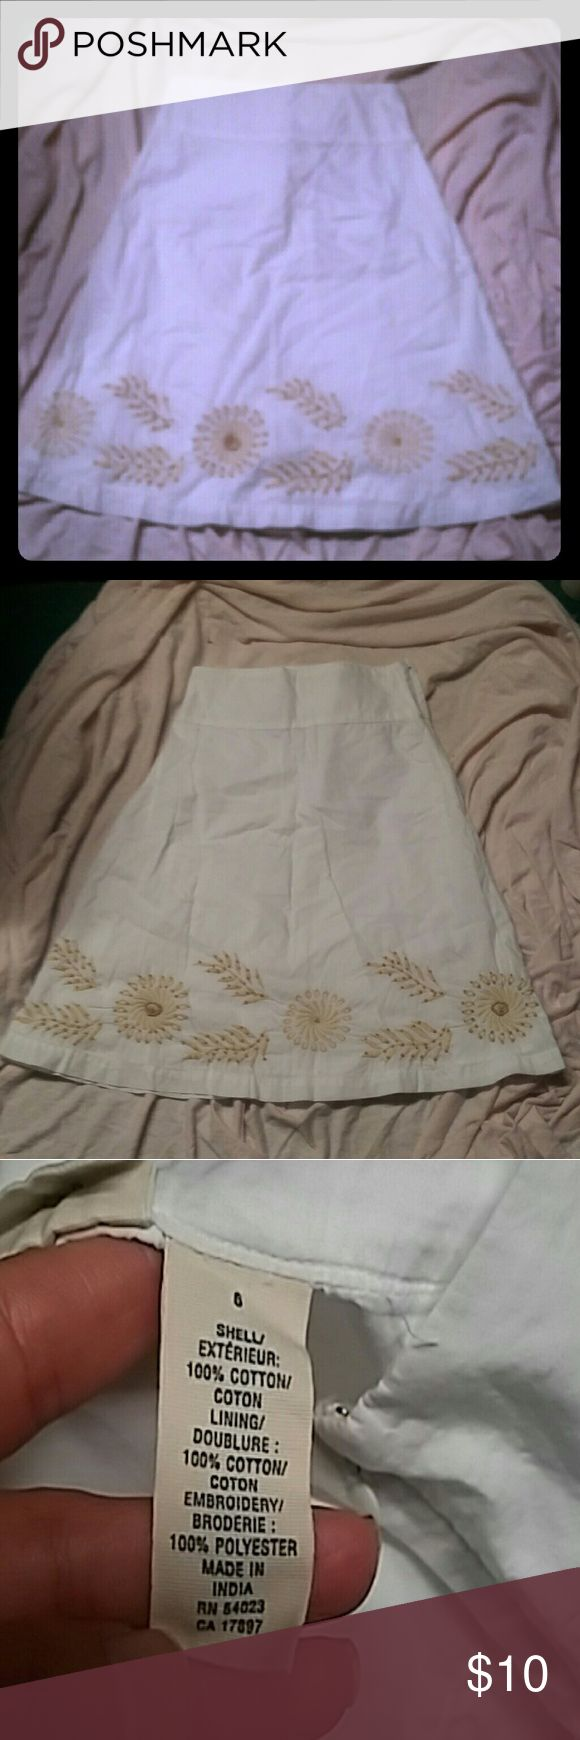 **FINAL PRICE**Old Navy white and cream skirt Exquisite 100% cotton lined skirt with shell on design.  Perfect for your little princess.  Very good condition.  No stains Bottoms Skirts